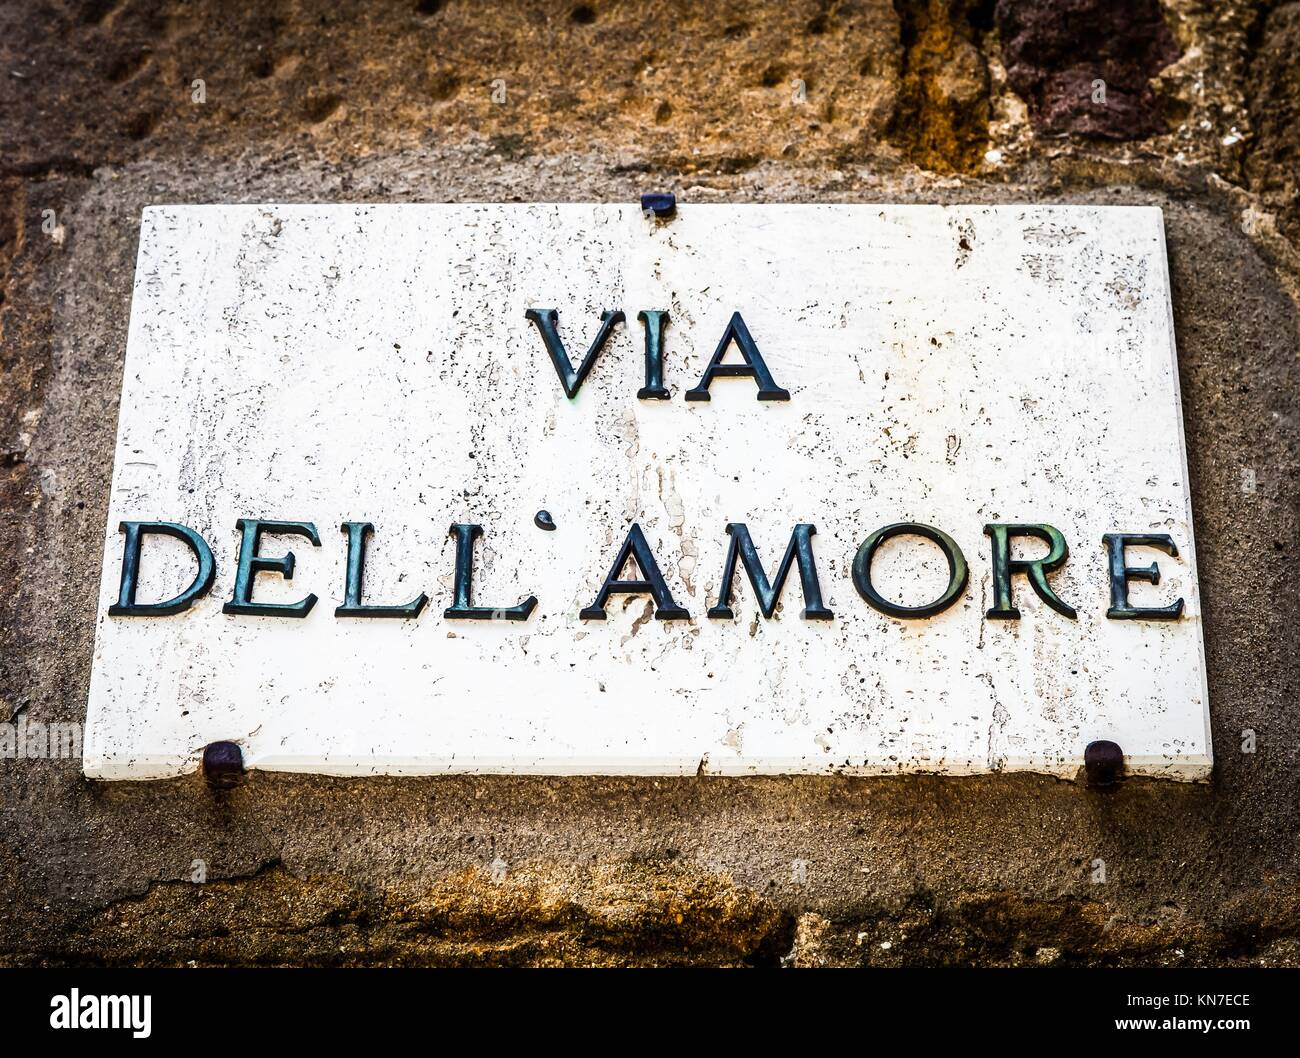 Italy - Pienza town. The streetsign of Via dell'amore (Love Street). - Stock Image